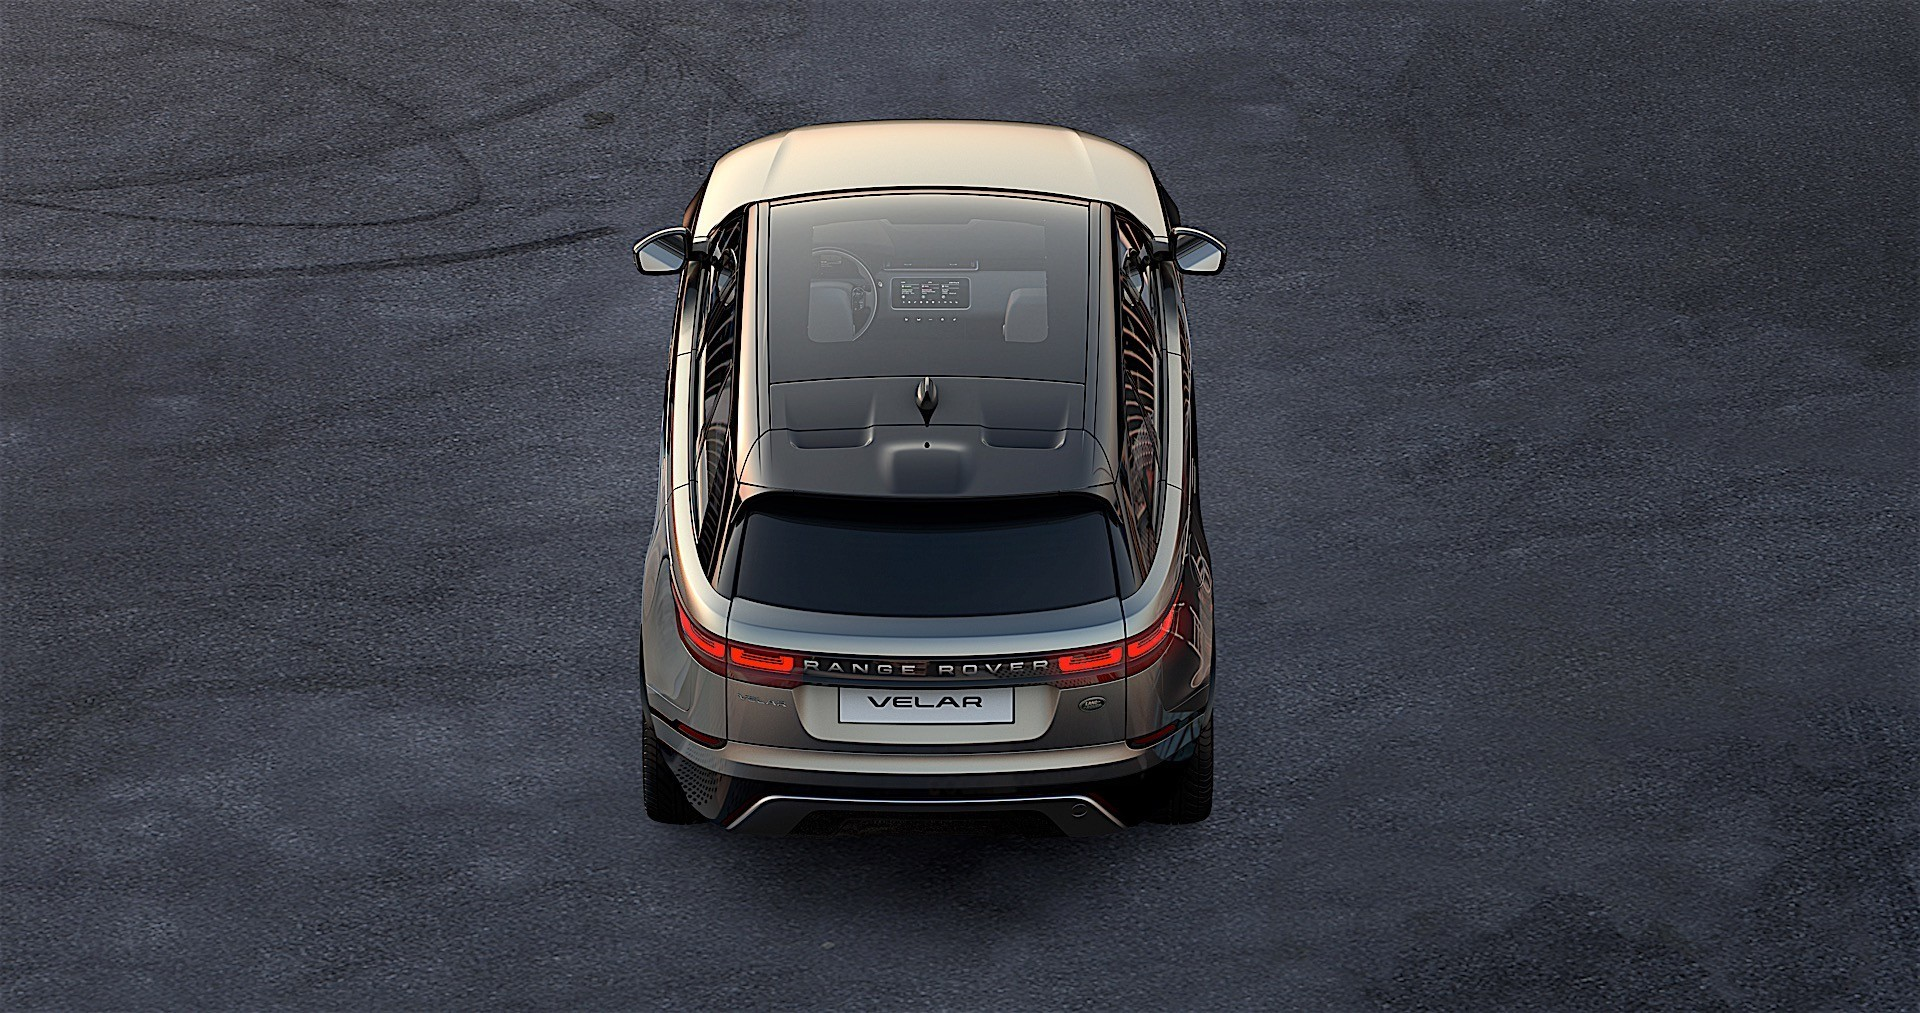 2018 Range Rover Velar Interior Spied Has Sport Design Teaser